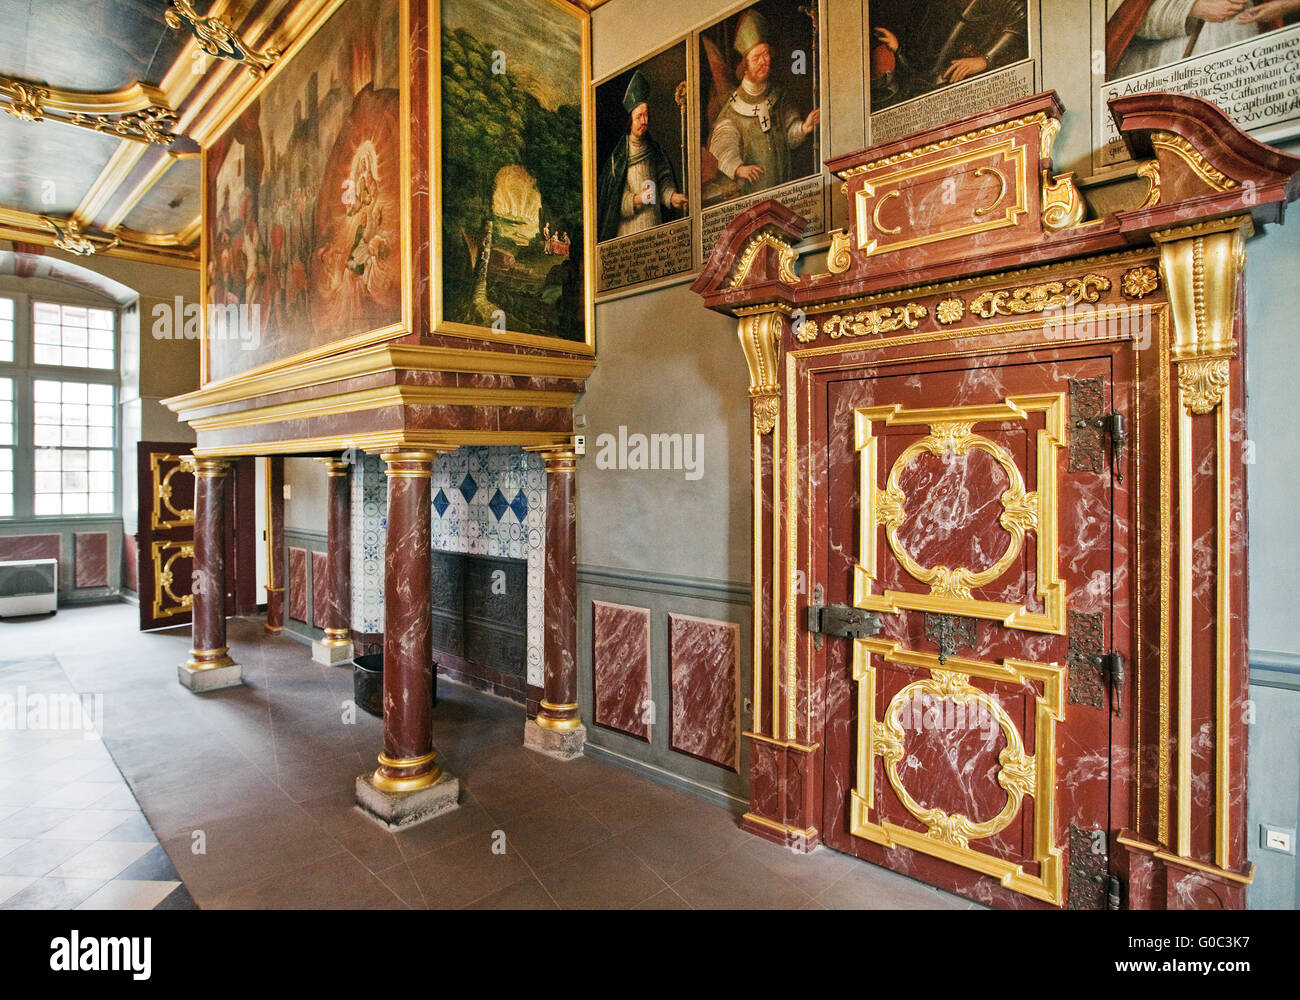 Knights hall, castle Iburg, Germany - Stock Image